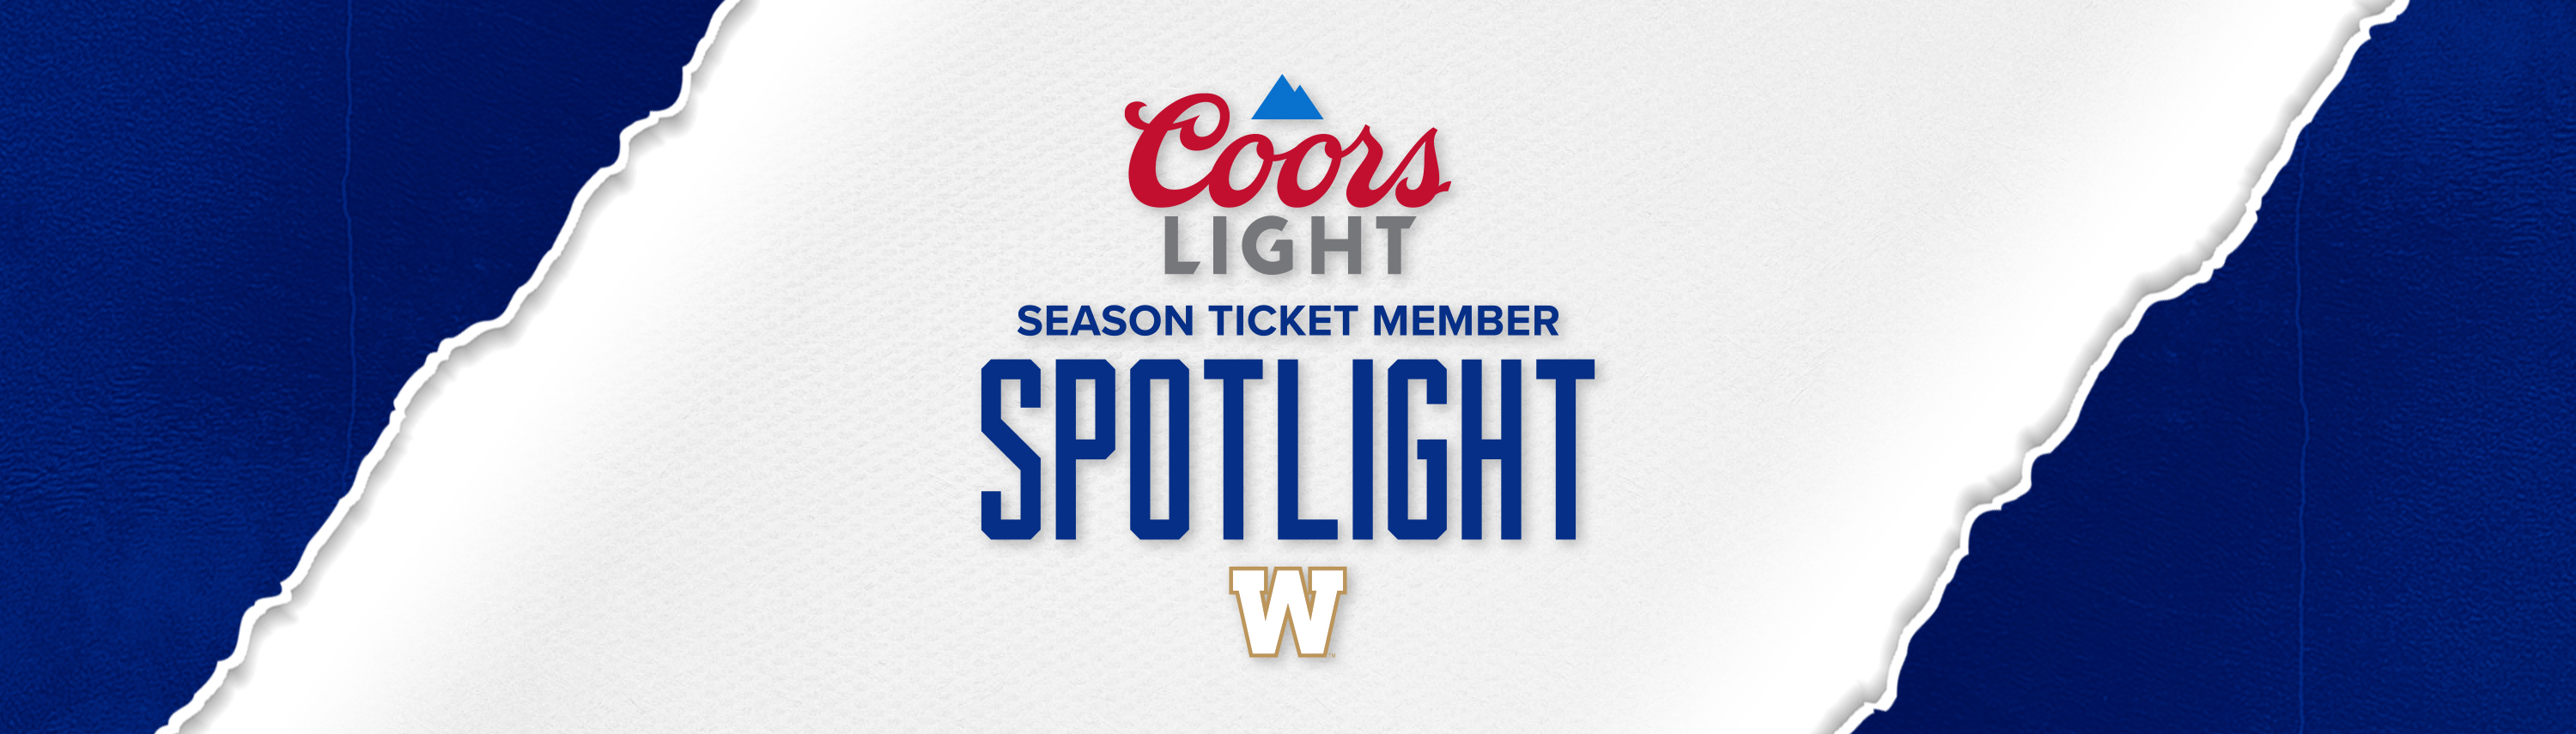 Coors Light Season Ticket Member Spotlight